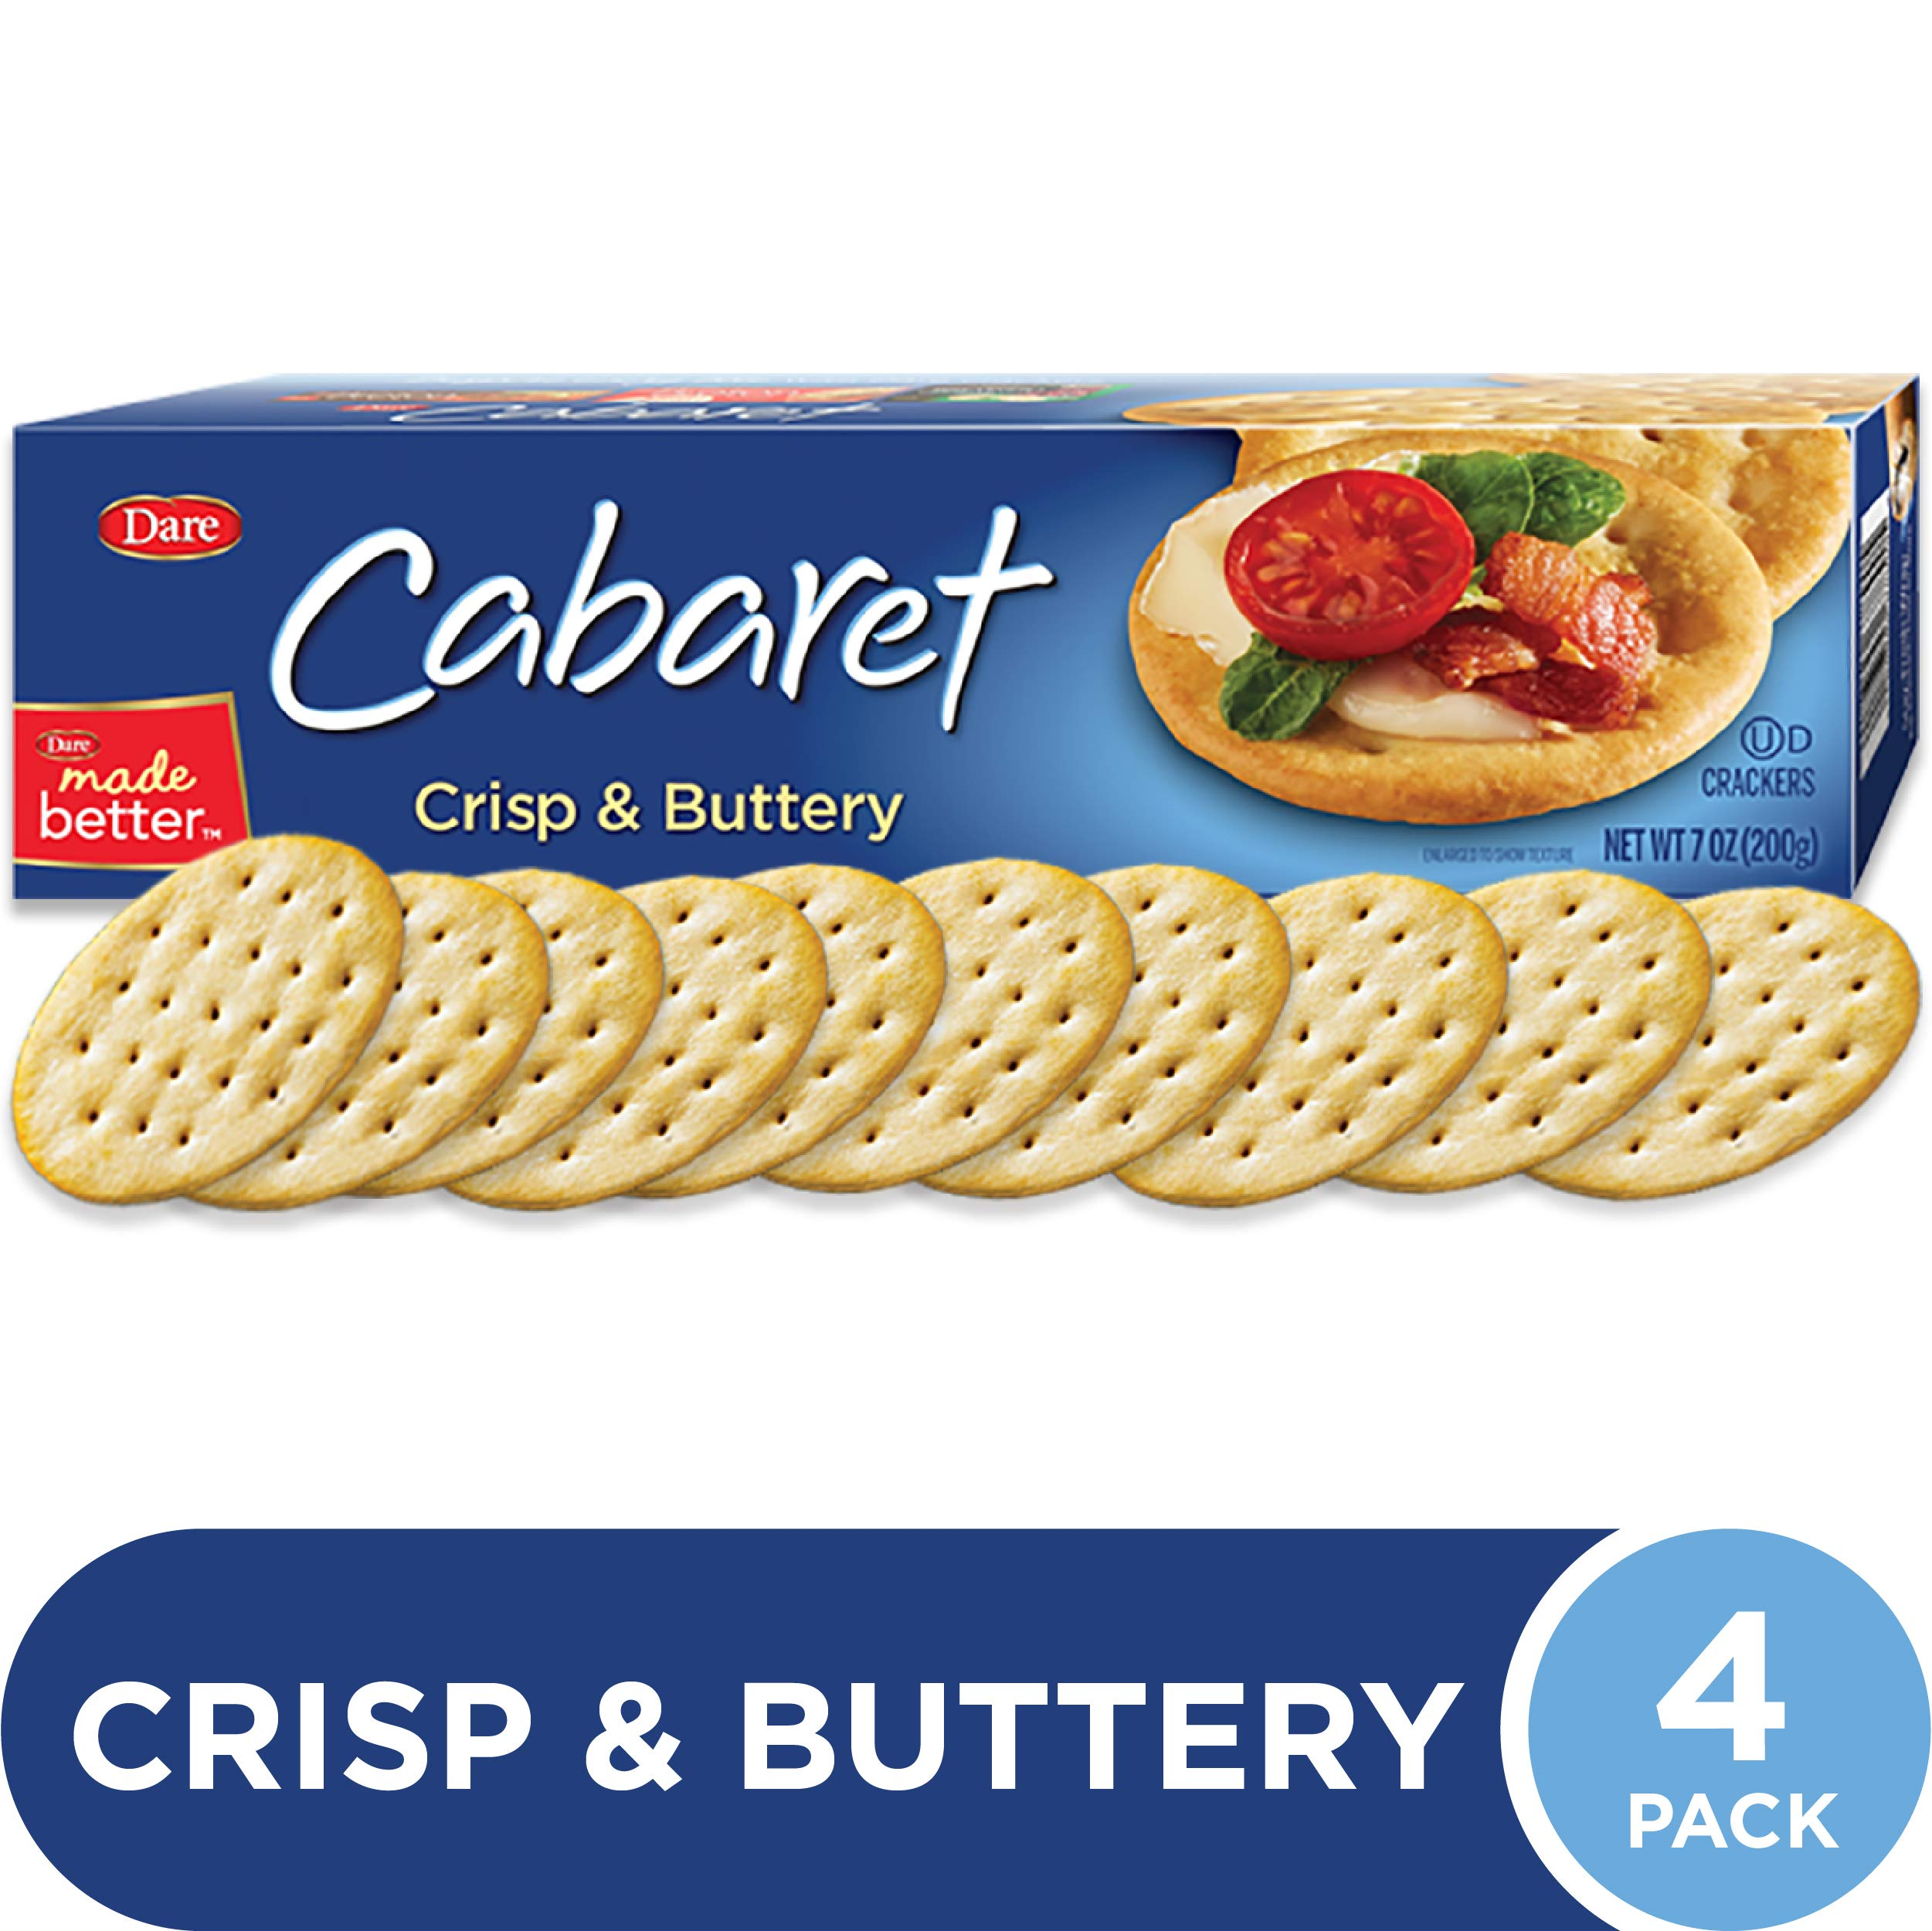 Dare Cabaret Crackers, 7 oz (Pack of 4) - Crisp and Creamy with a Rich, Buttery Flavor - No Artificial Colors or Flavors, 0g Trans Fat Per Serving - Delicious Plain or Topped by Dare